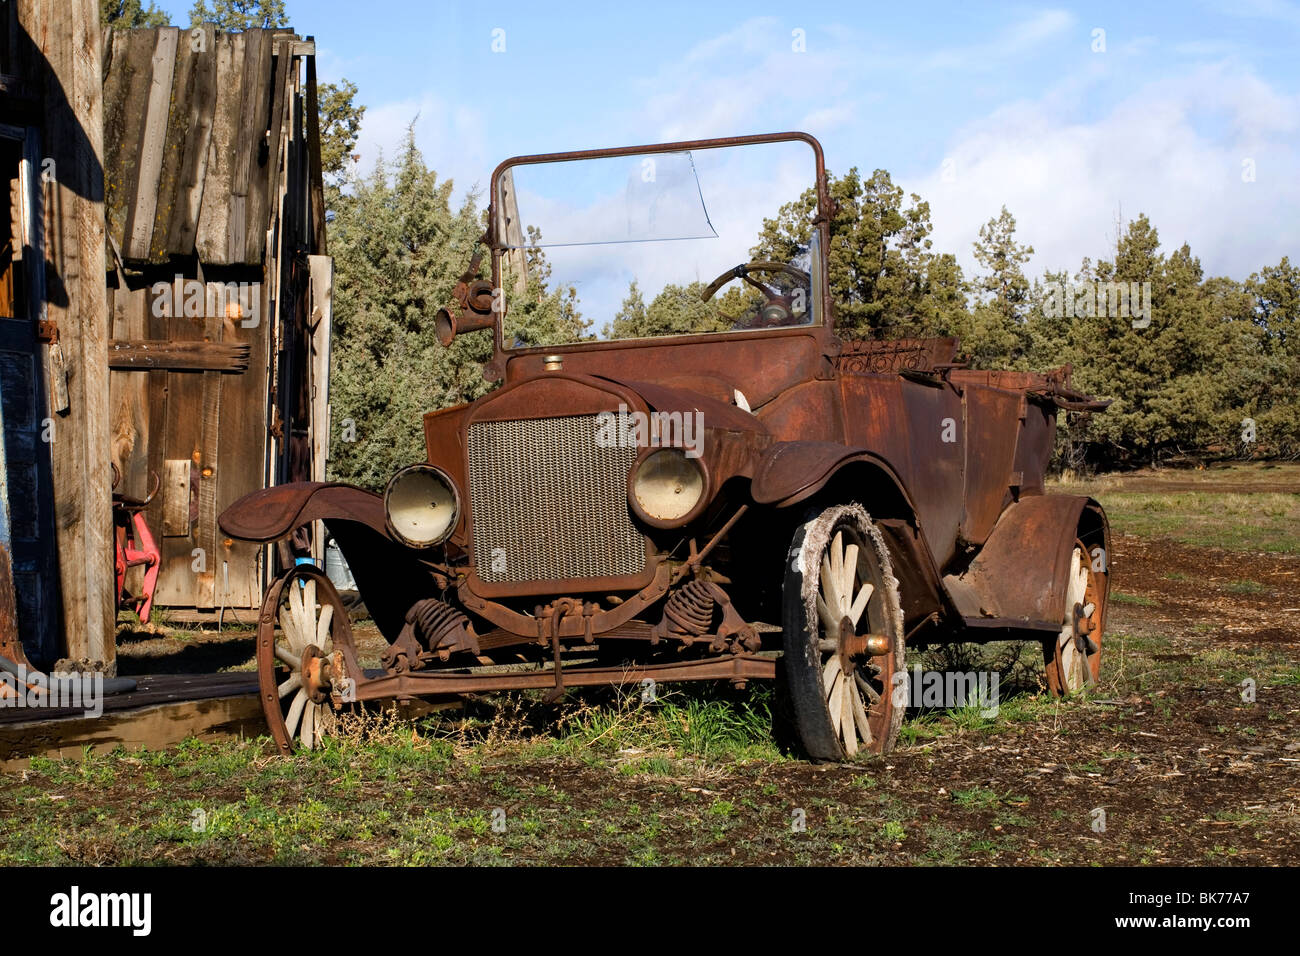 A rusted old classic antique automobile from the 1920s - Stock Image